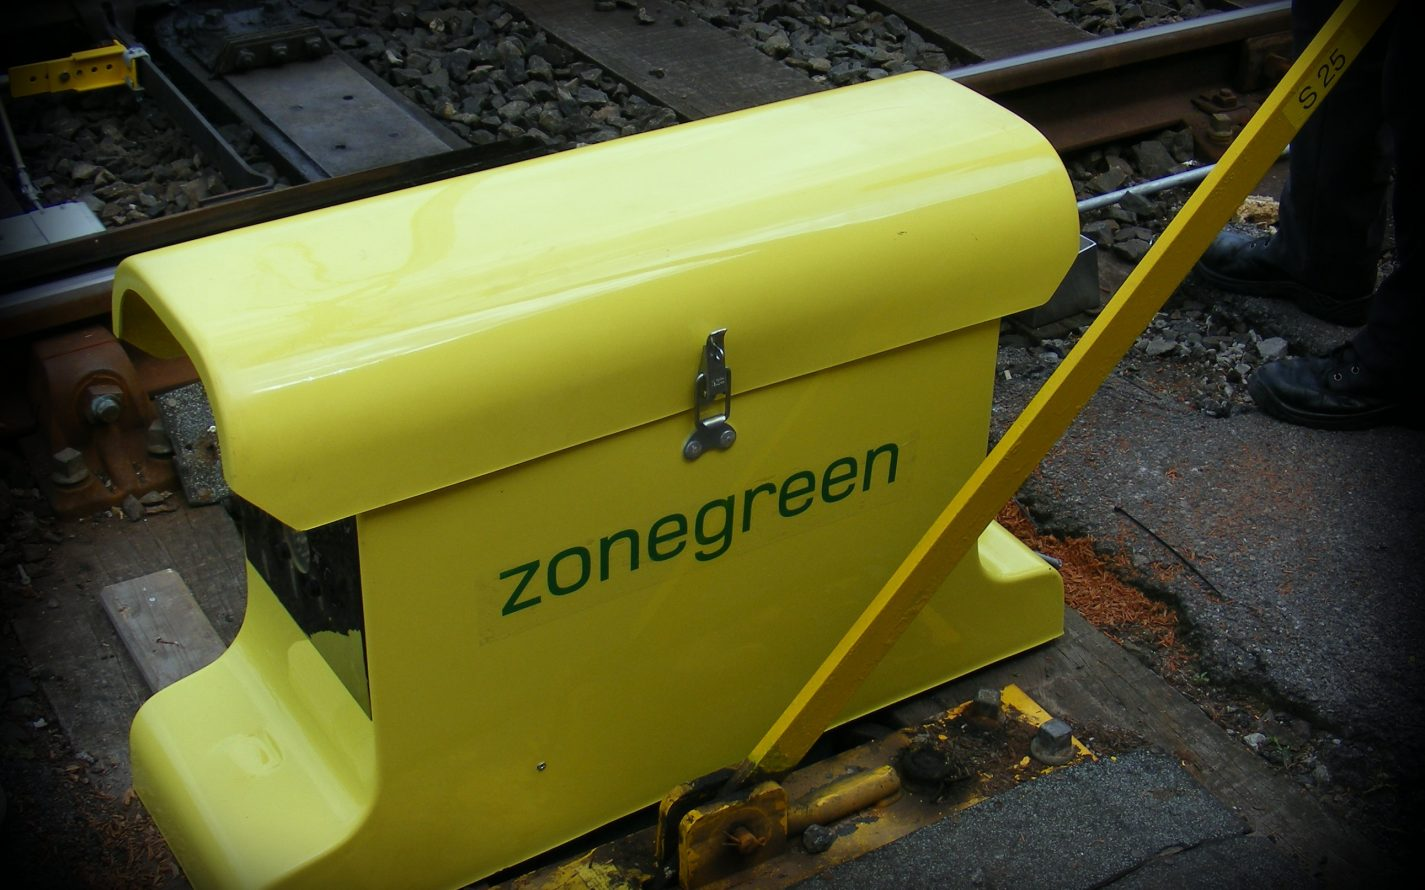 ZONEGREEN ON POINT FOR DEPOT CONVERTERS